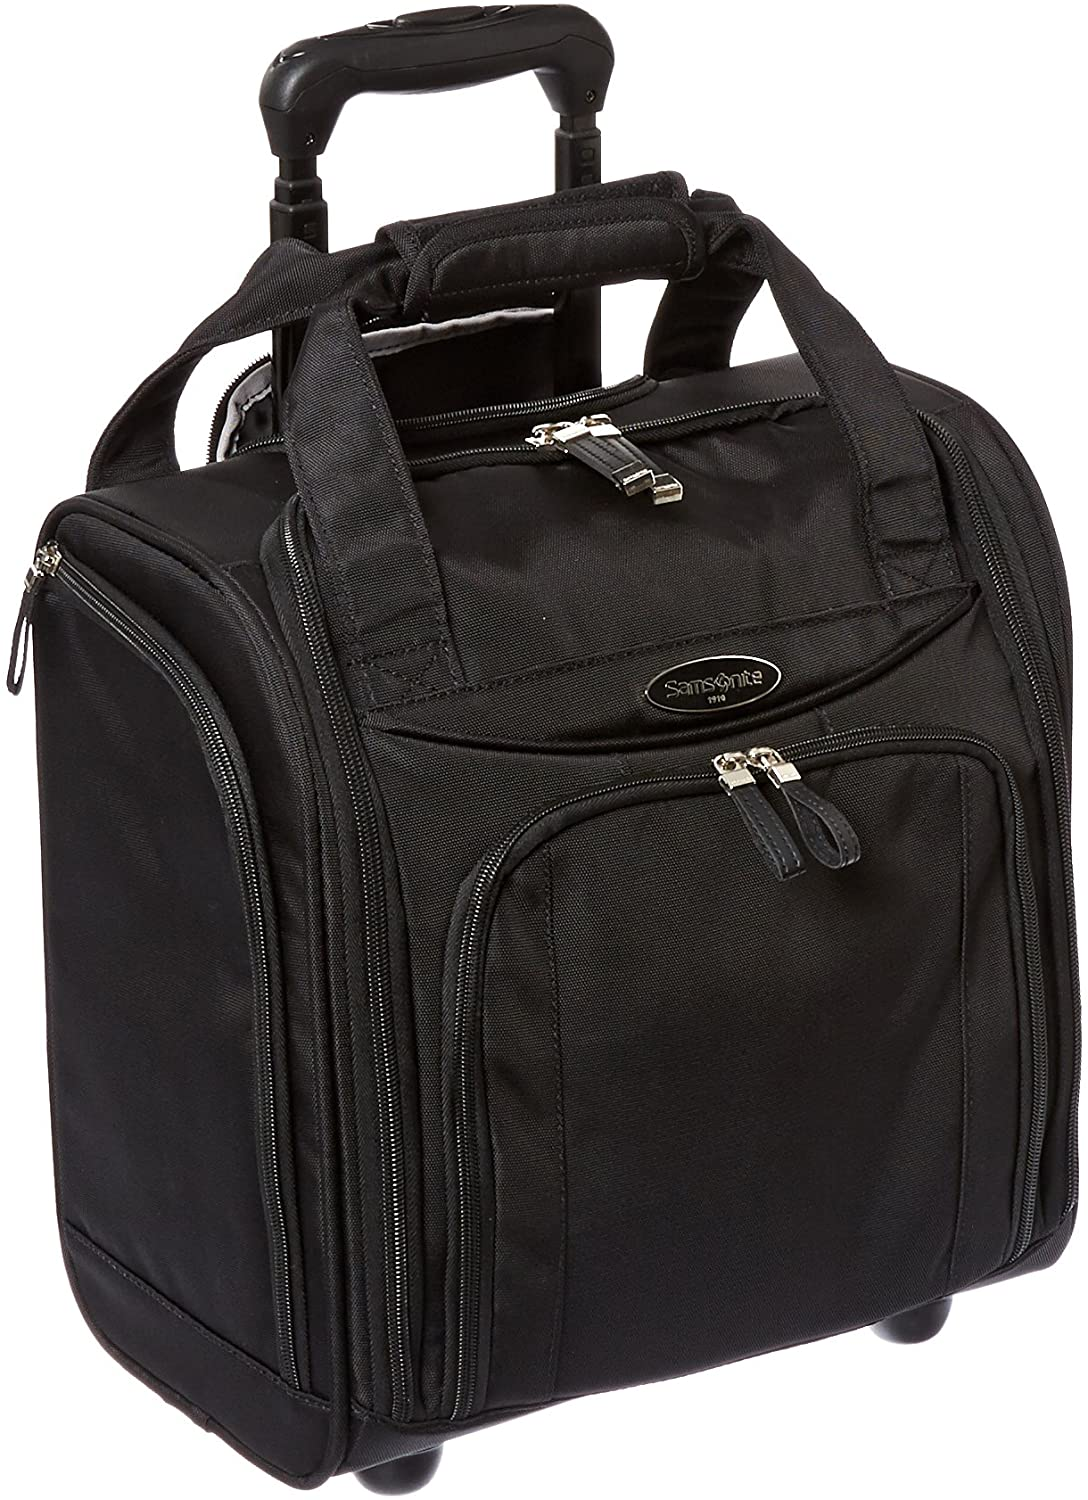 Samsonite Carry-On Underseater Luggage